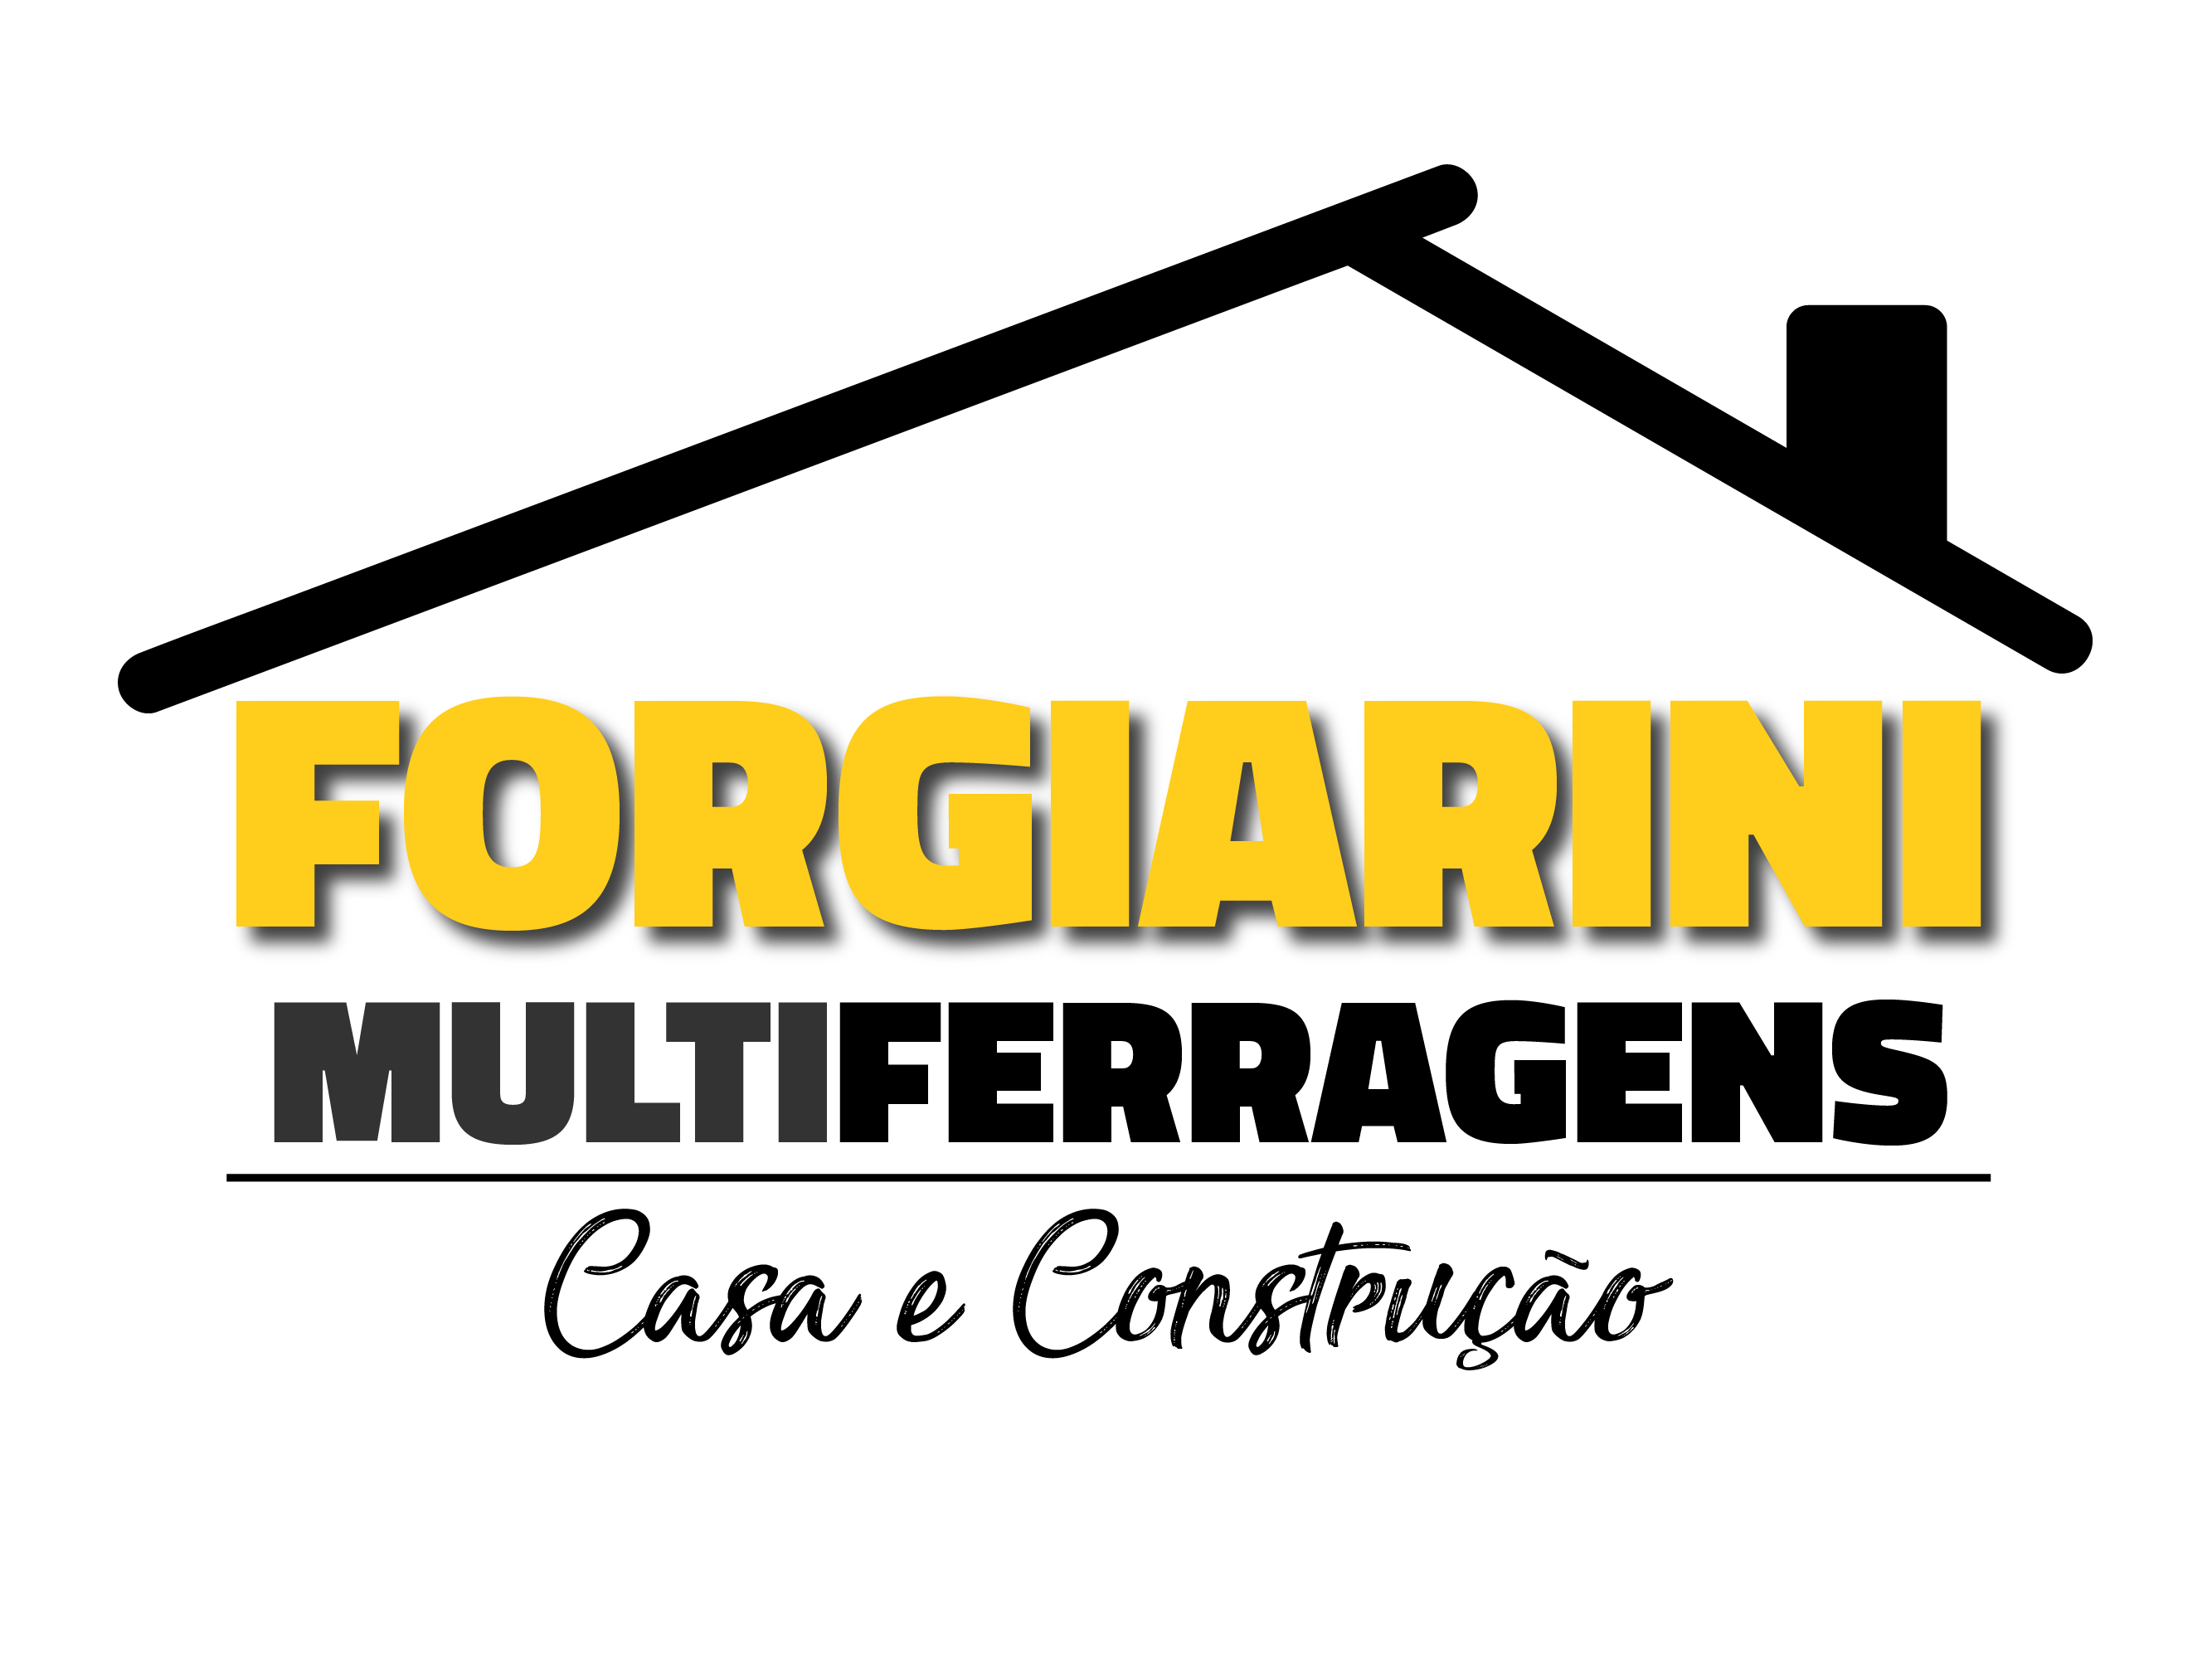 Logo da Forgiarini Multiferragens